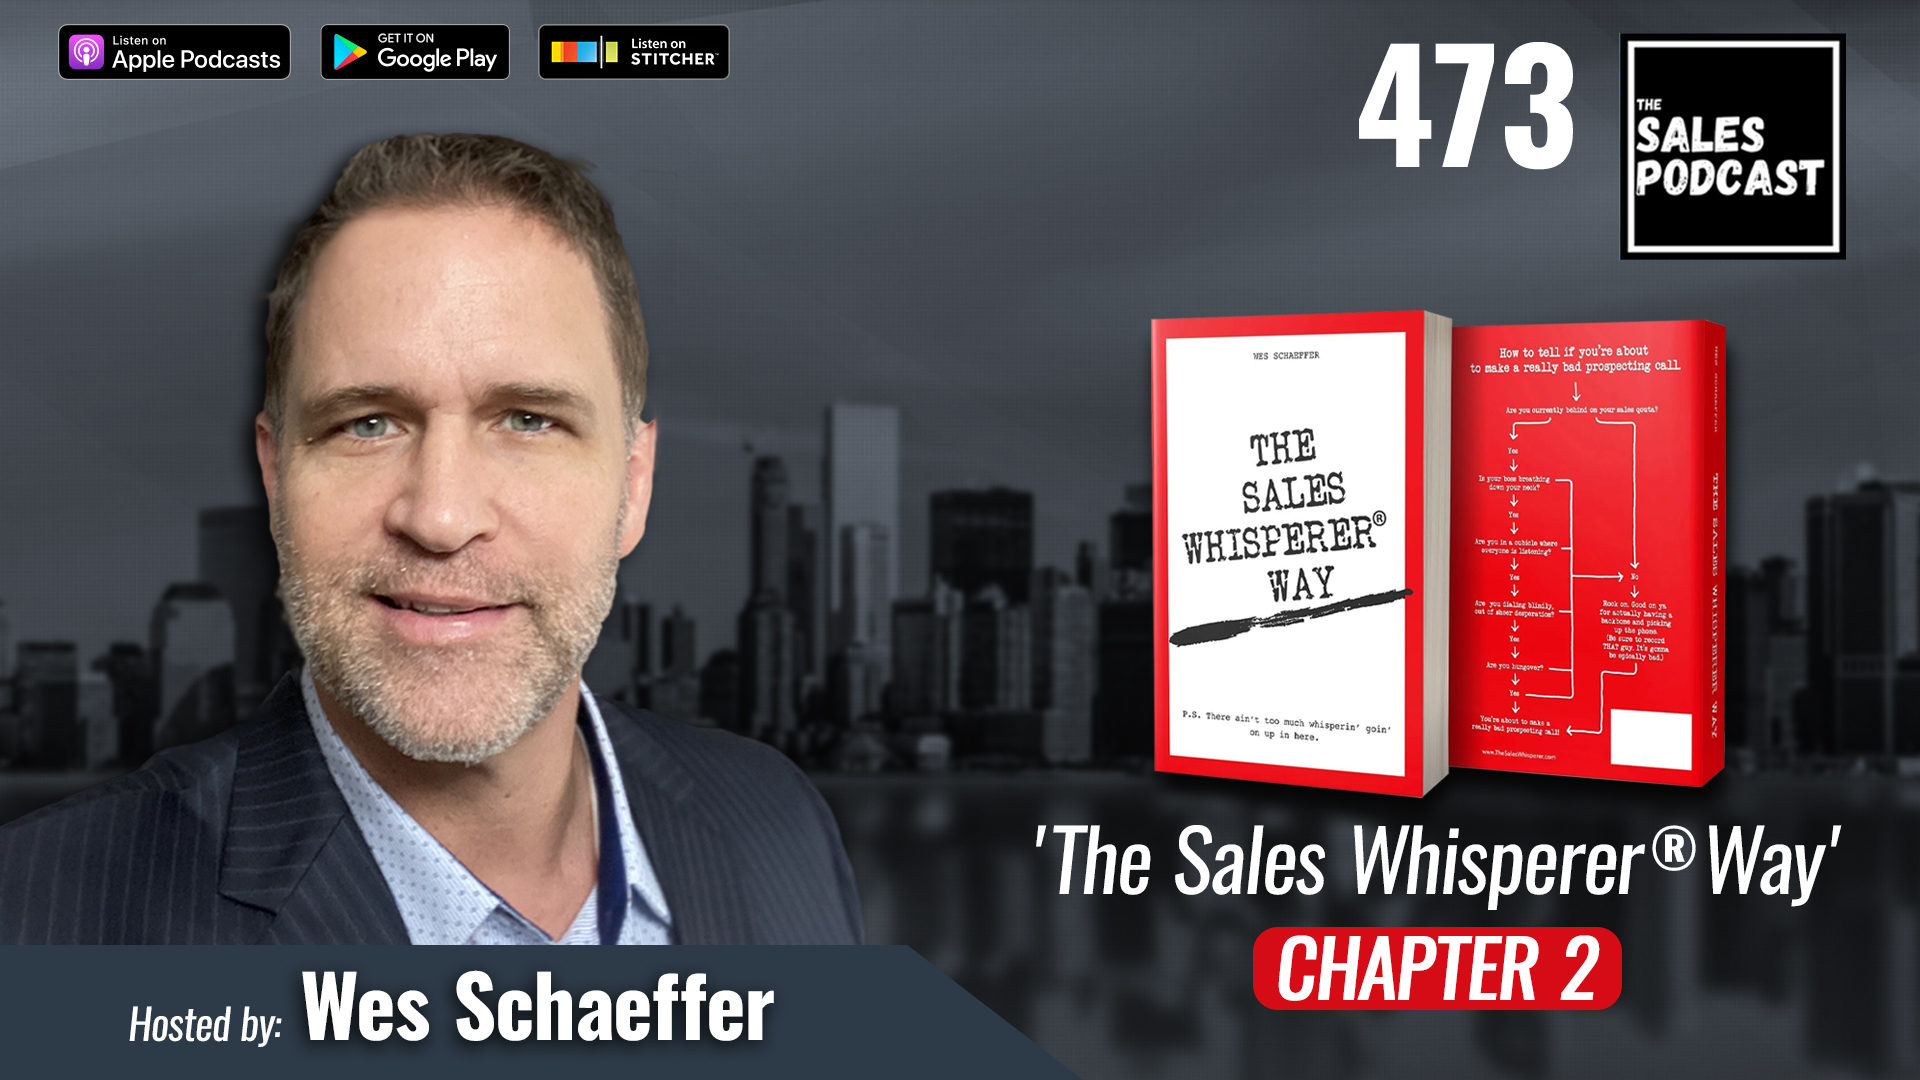 'The Sales Whisperer® Way' Chapter 2 on The Sales Podcast with Wes Schaeffer, The Sales Whisperer®